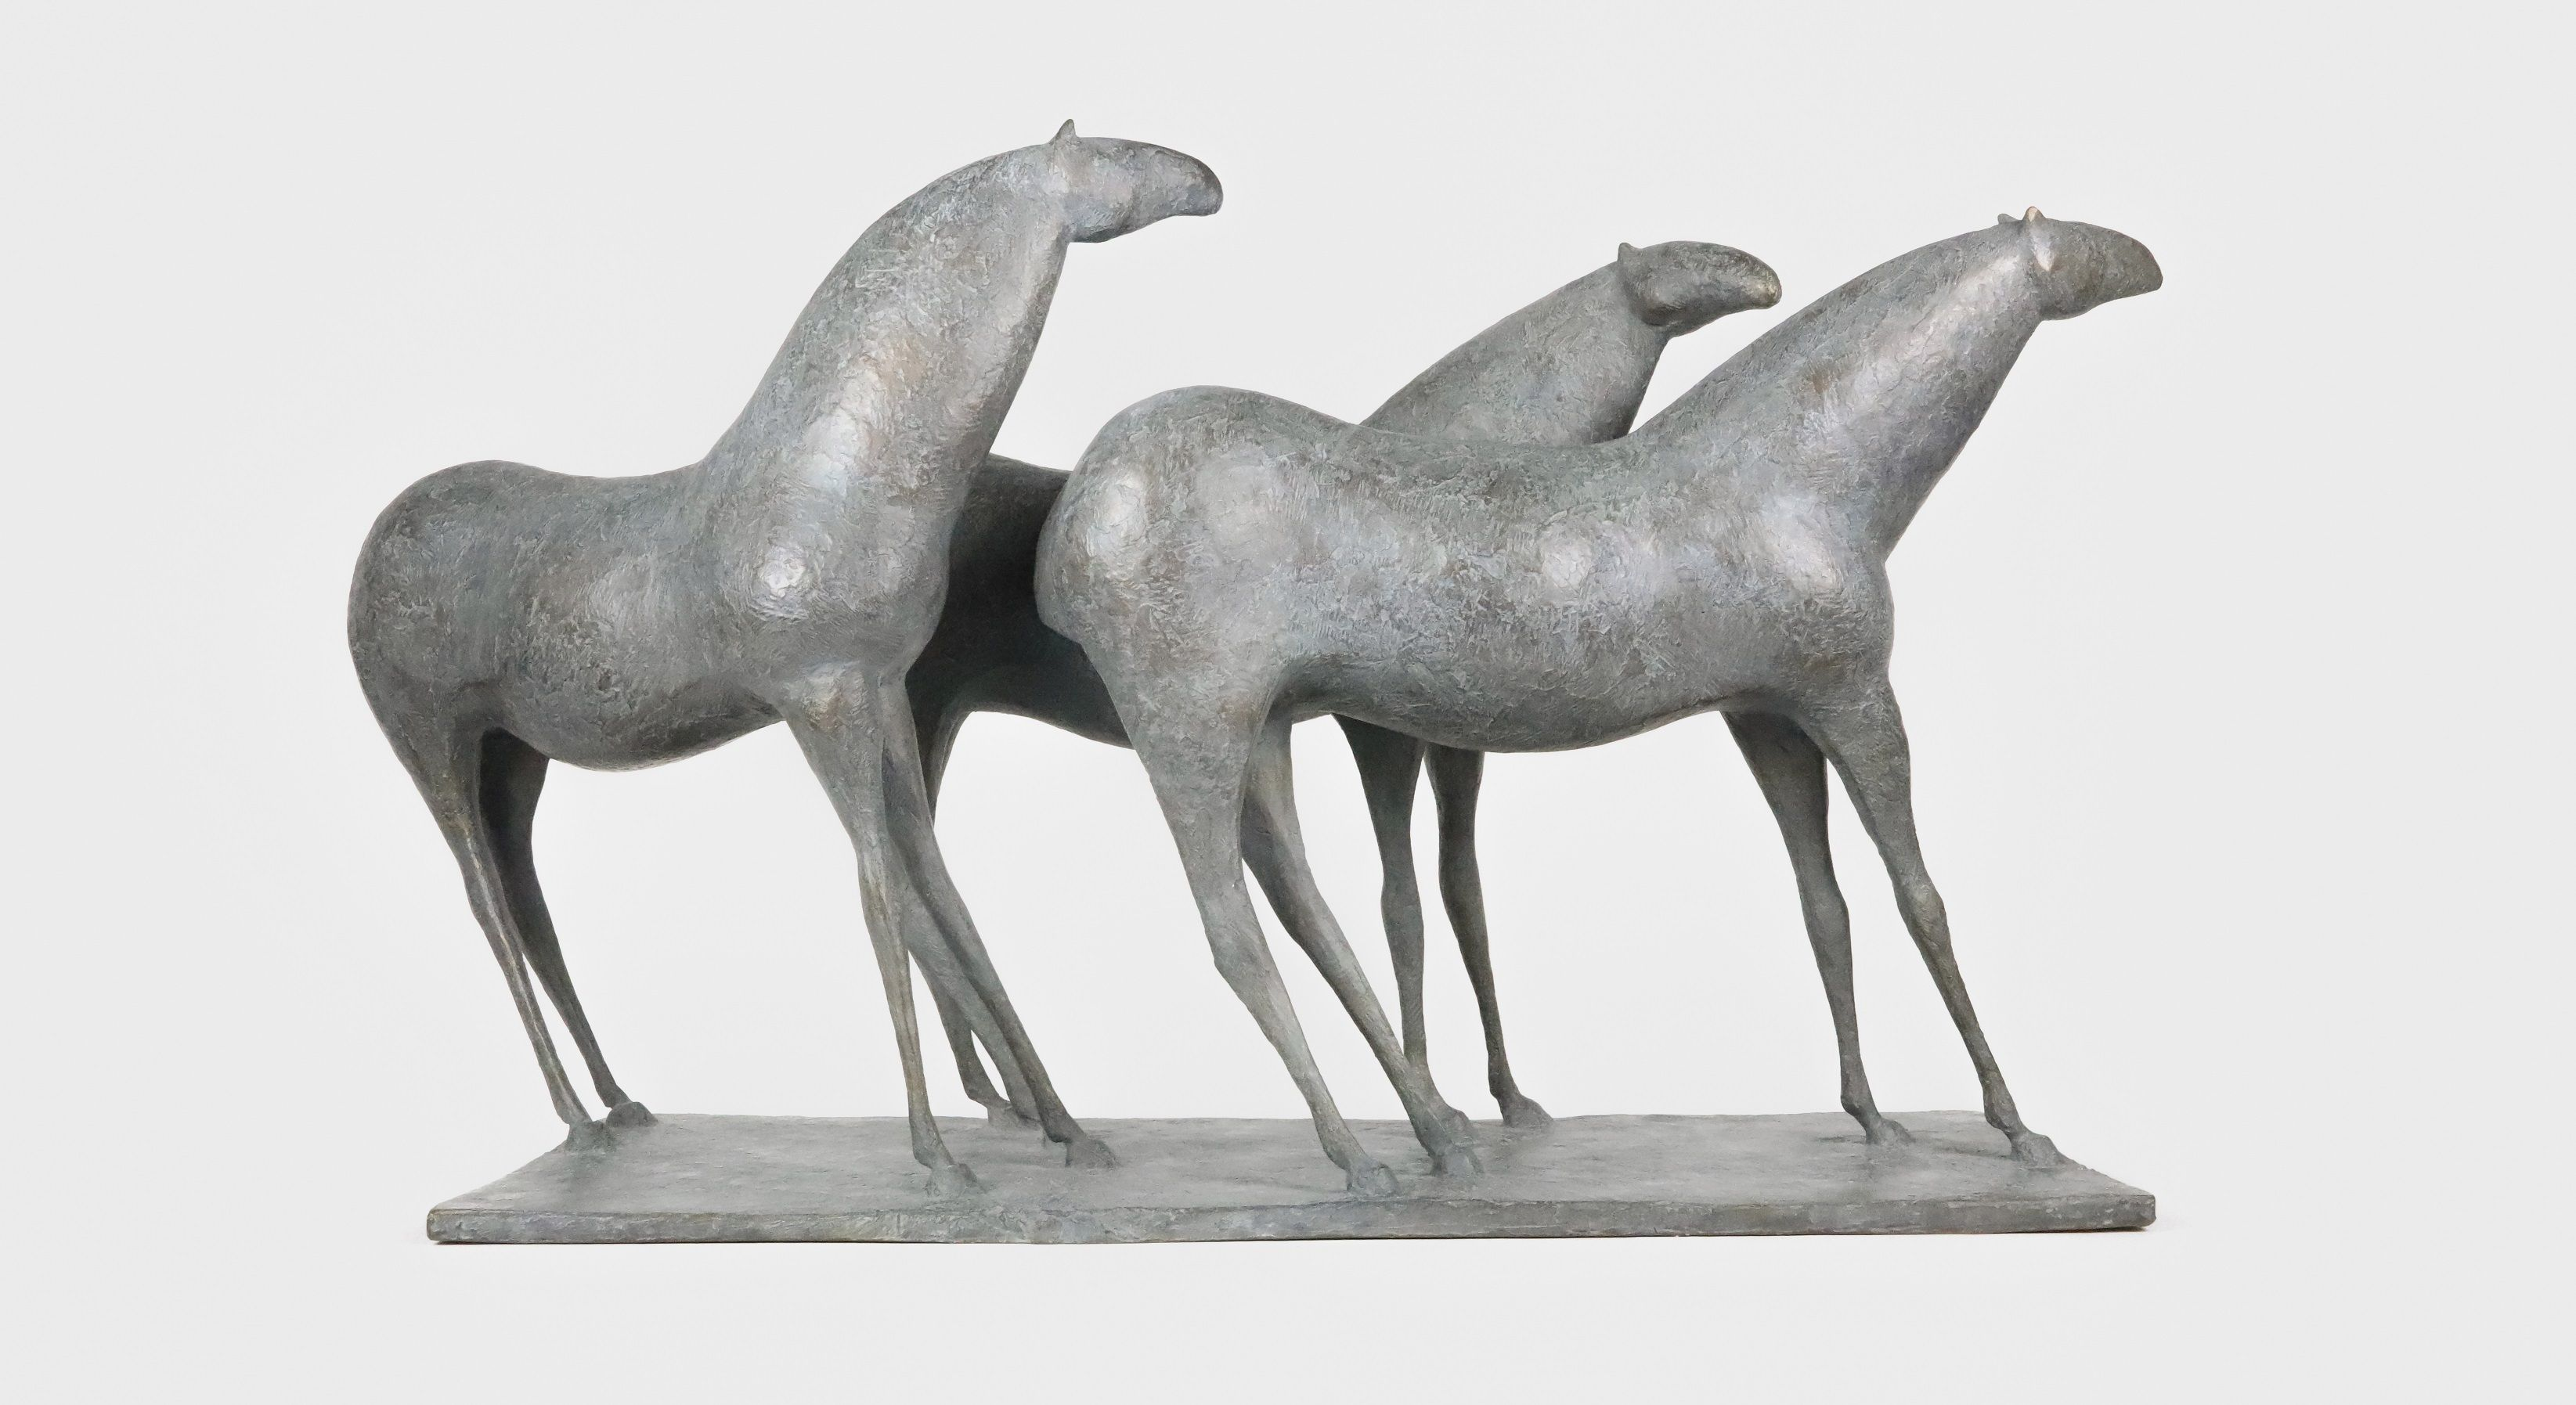 3 Chevaux, Pierre Yermia,Sculpture contemporaine